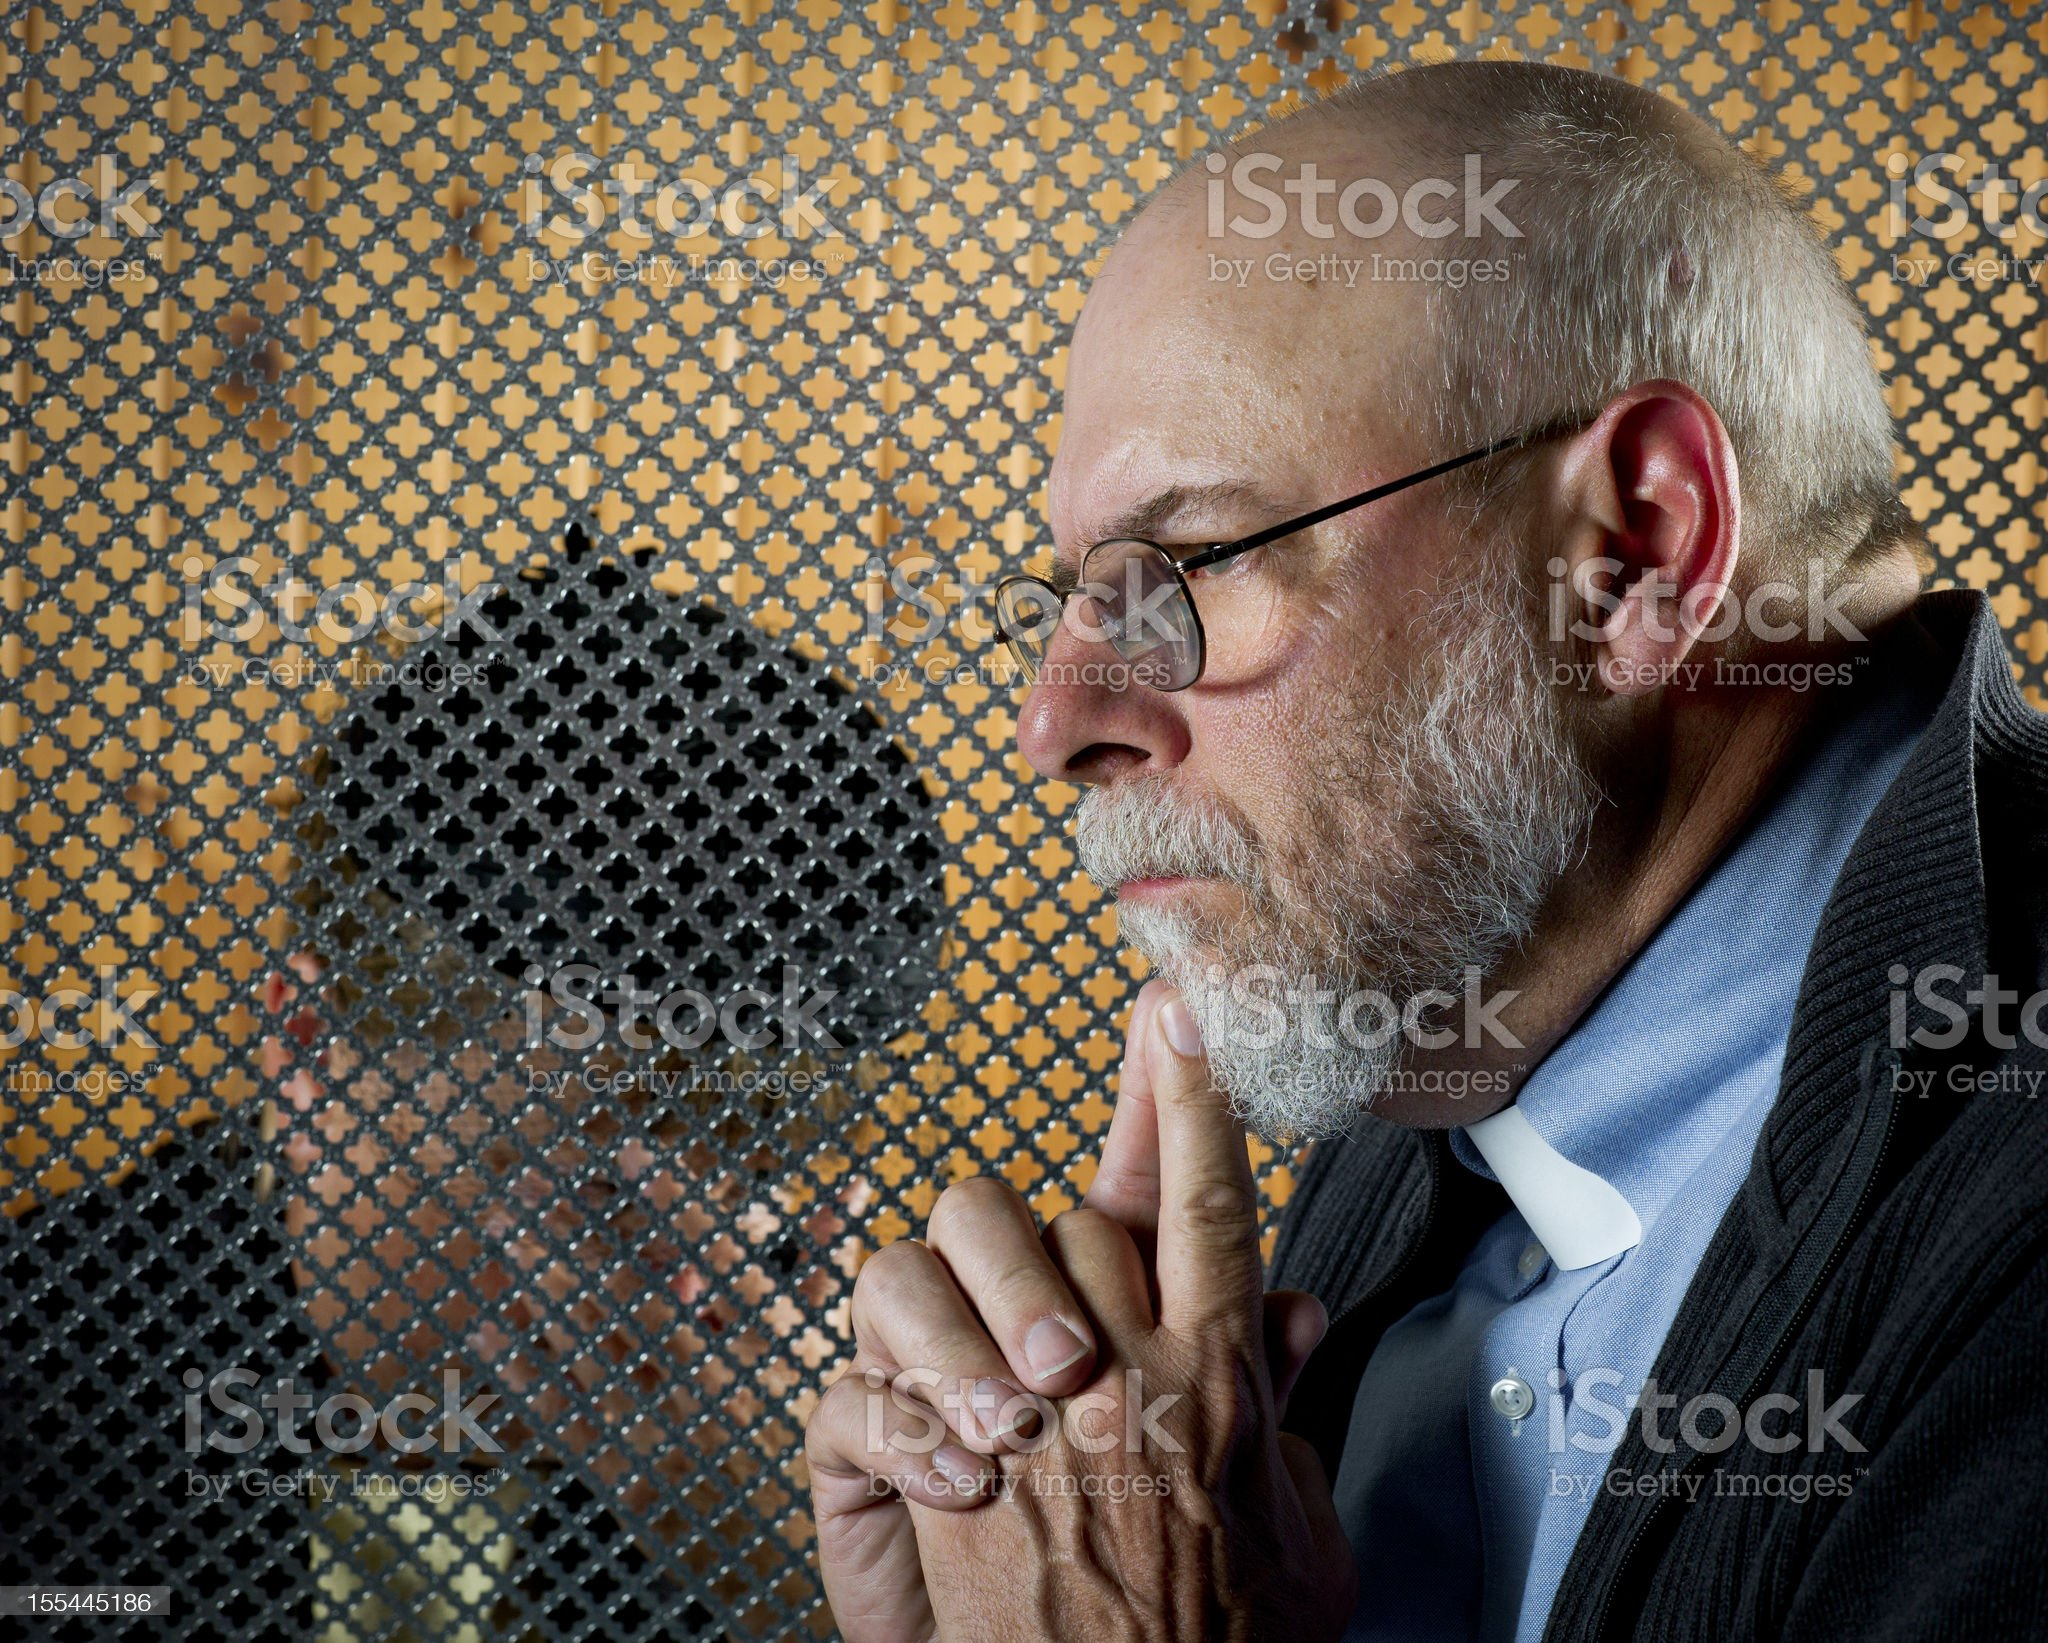 A patron giving a confession through a grate royalty-free stock photo